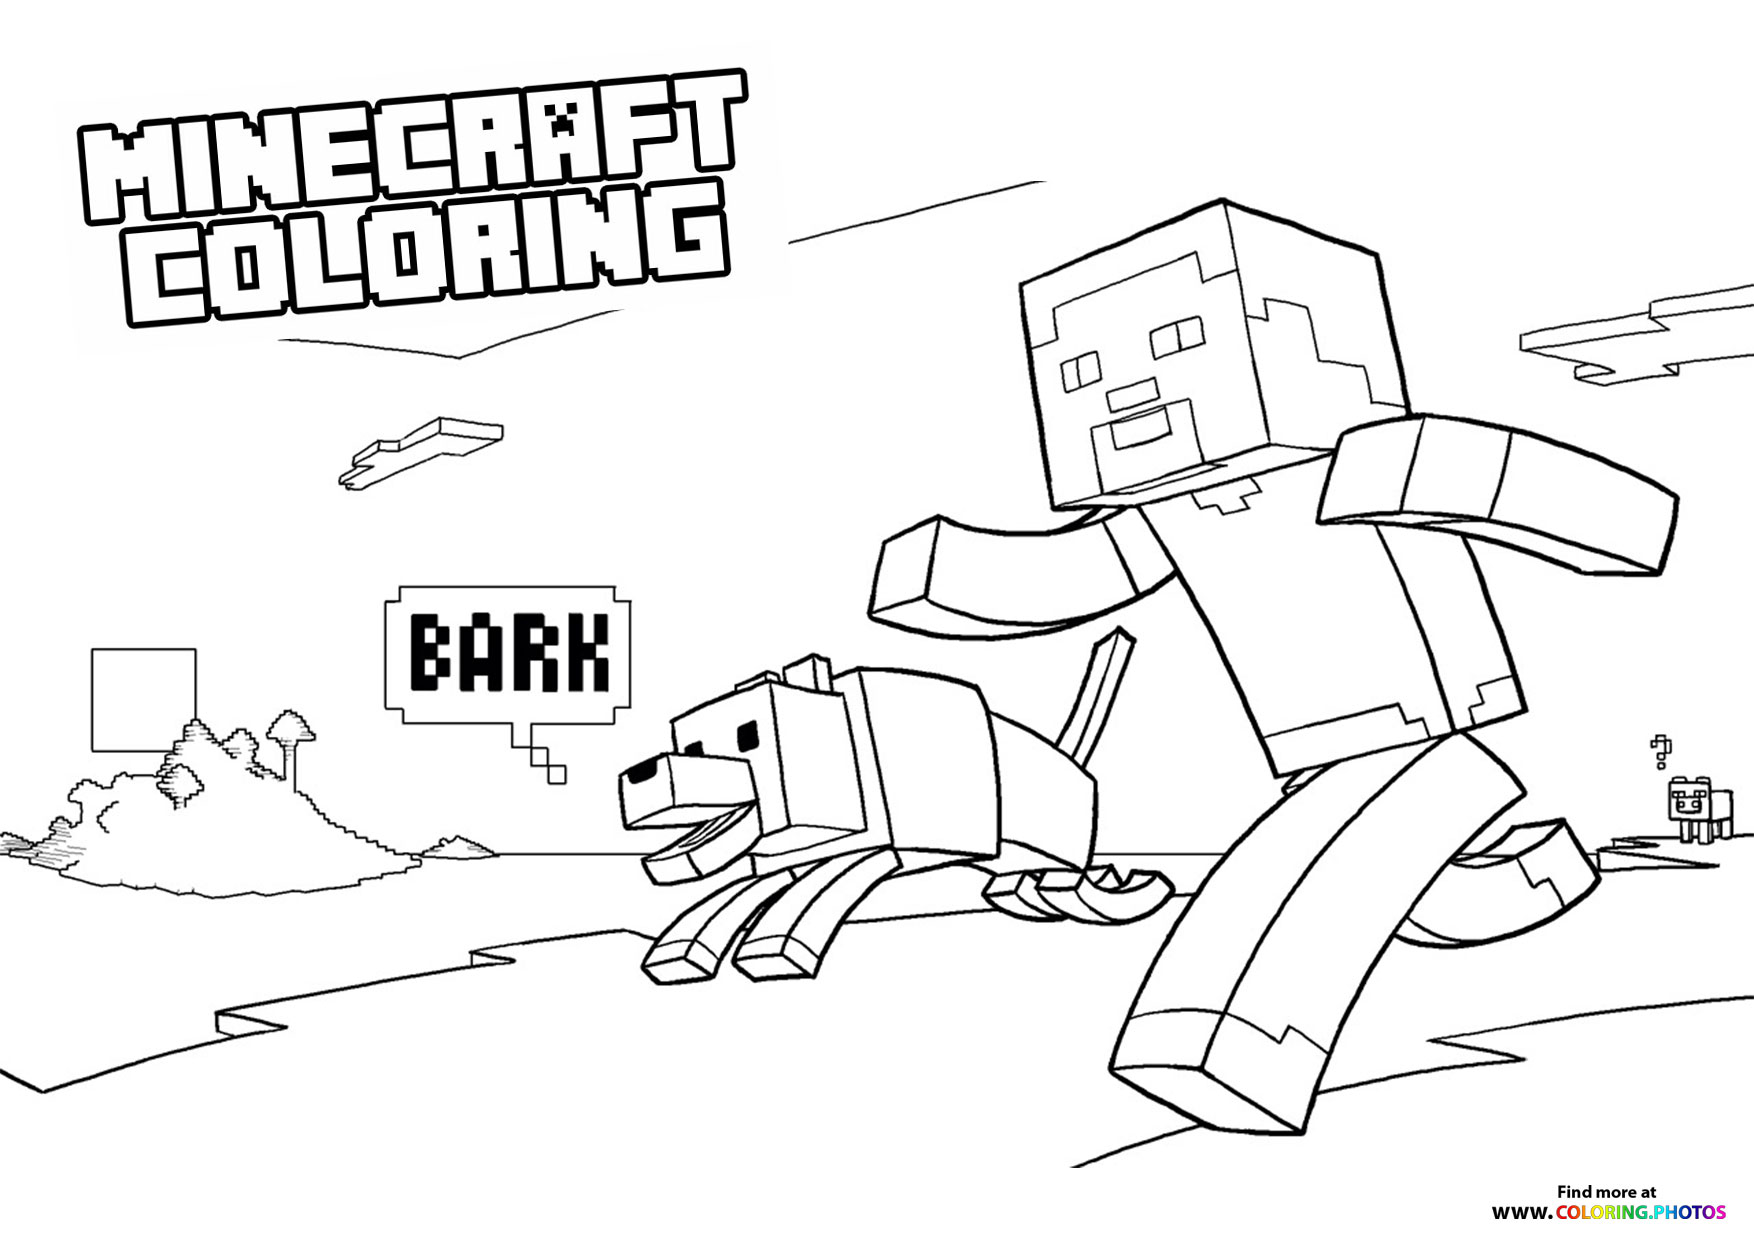 minecraft steve with dog coloring for kids character nativity scene sheet turtle drawing coloring pages Coloring Page Minecraft